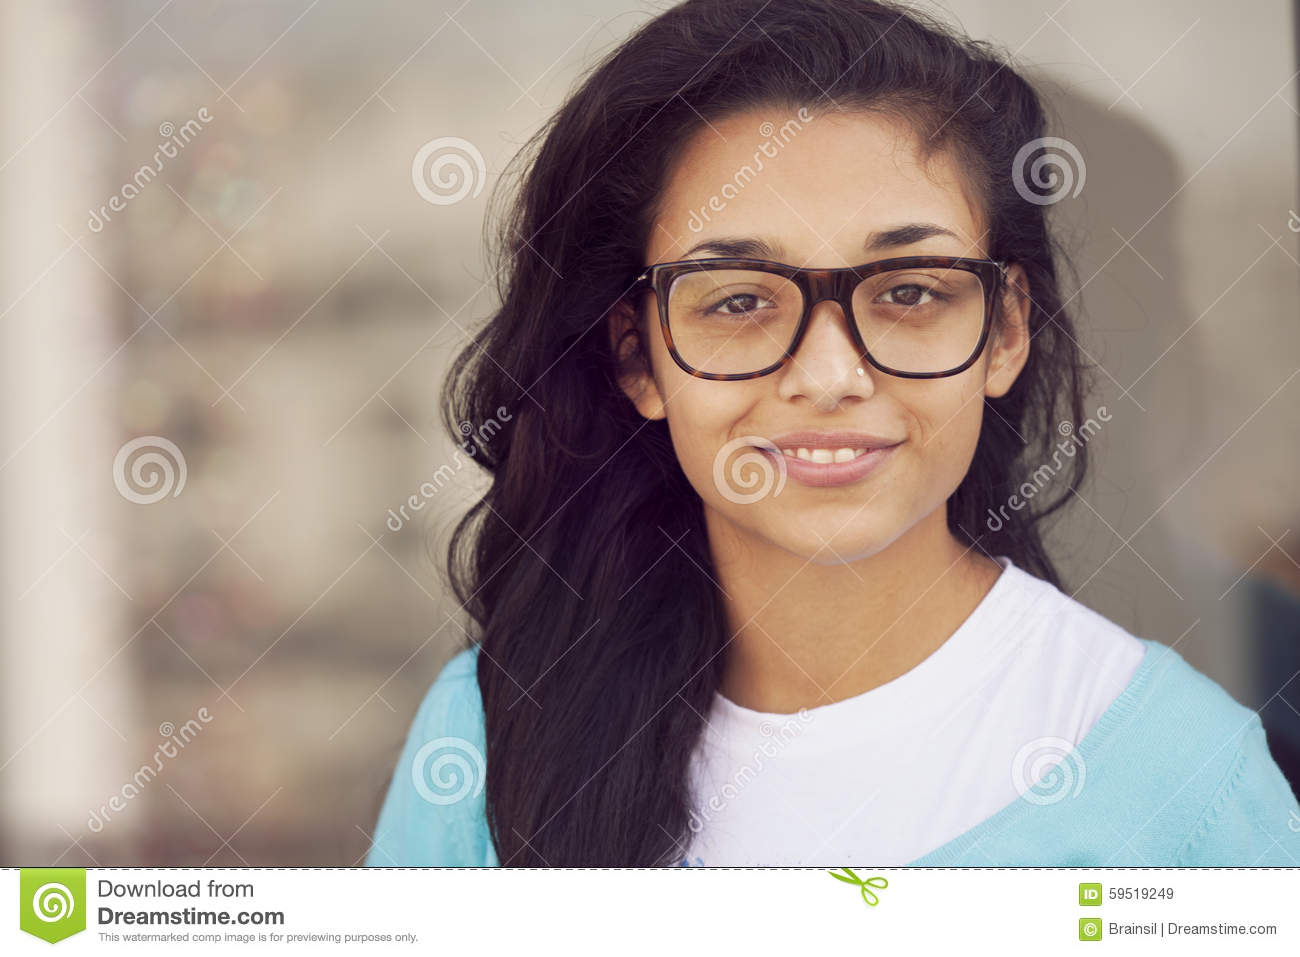 Happy young indian woman with glasses